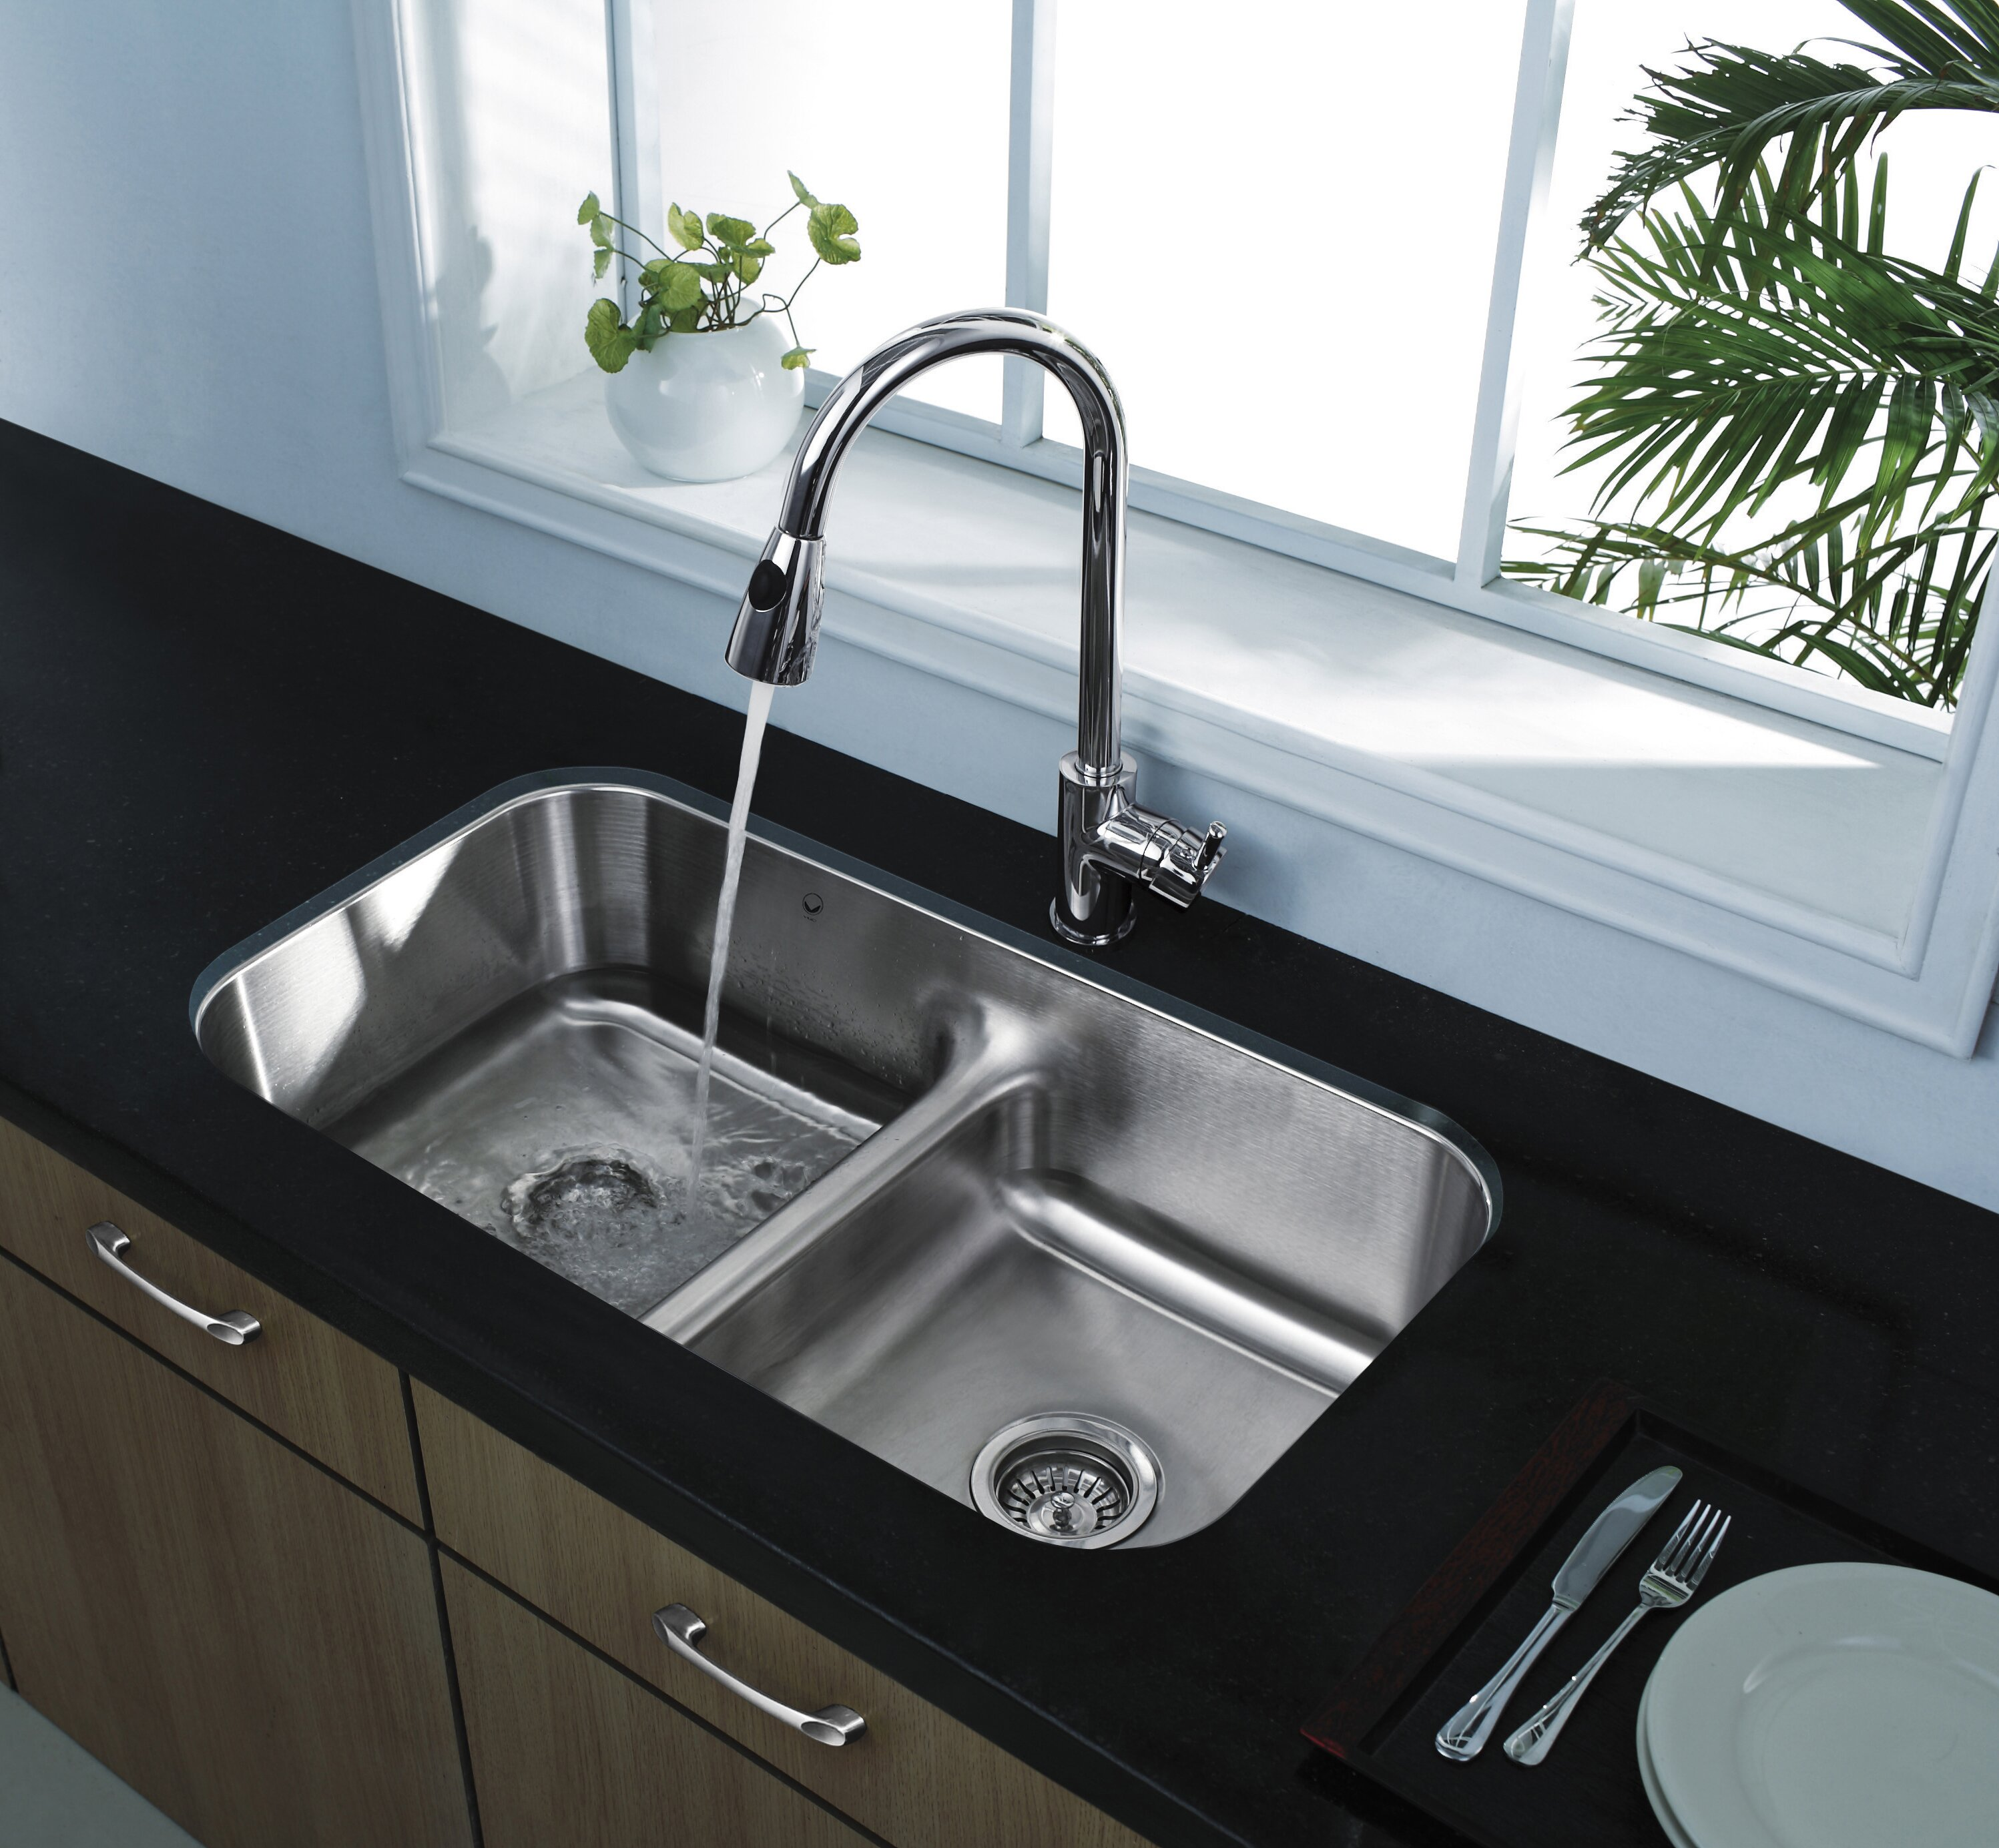 Stainless Steel Undermount Kitchen Sink Double Bowl | Kitchen Sinks Stainless Steel | Ss Sinks Kitchen